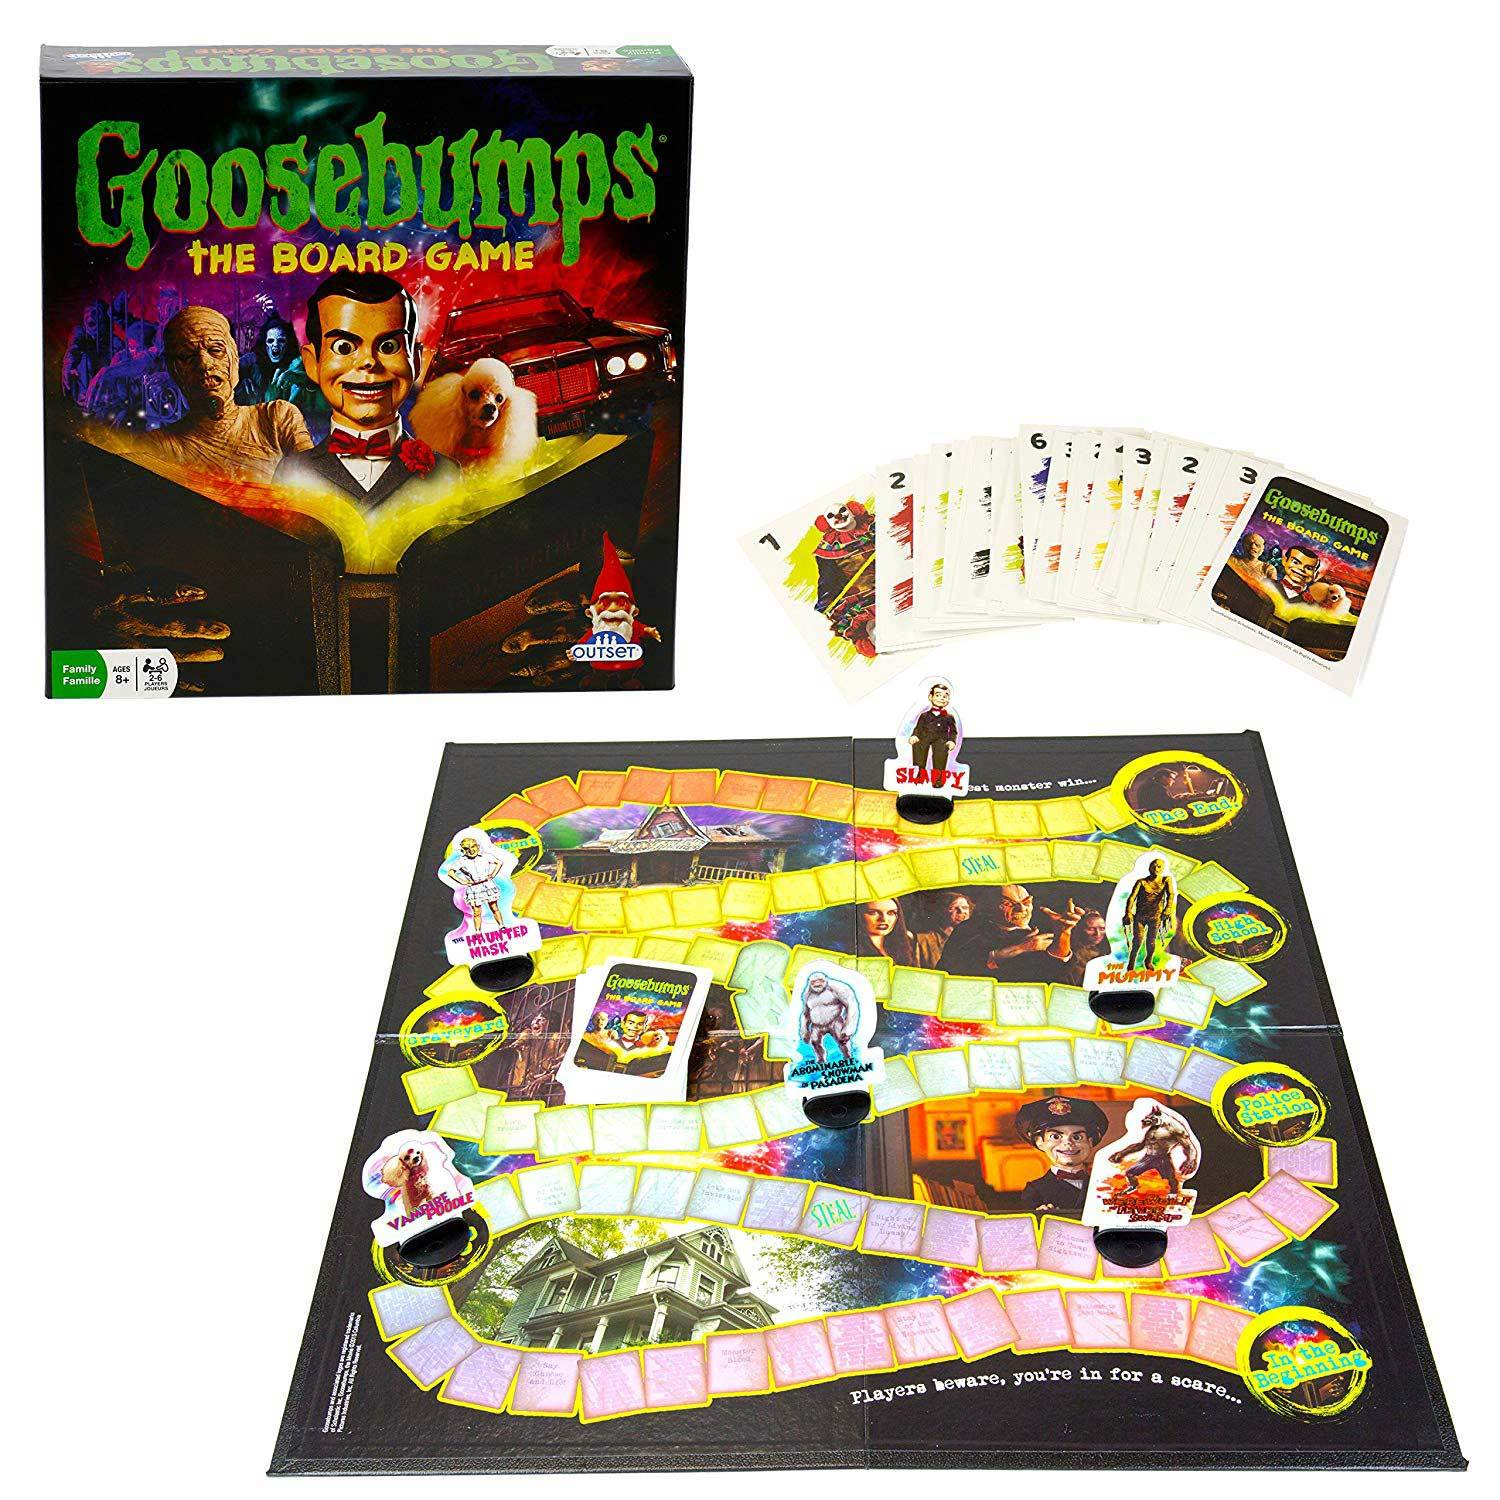 Goosebumps Movie Game photo